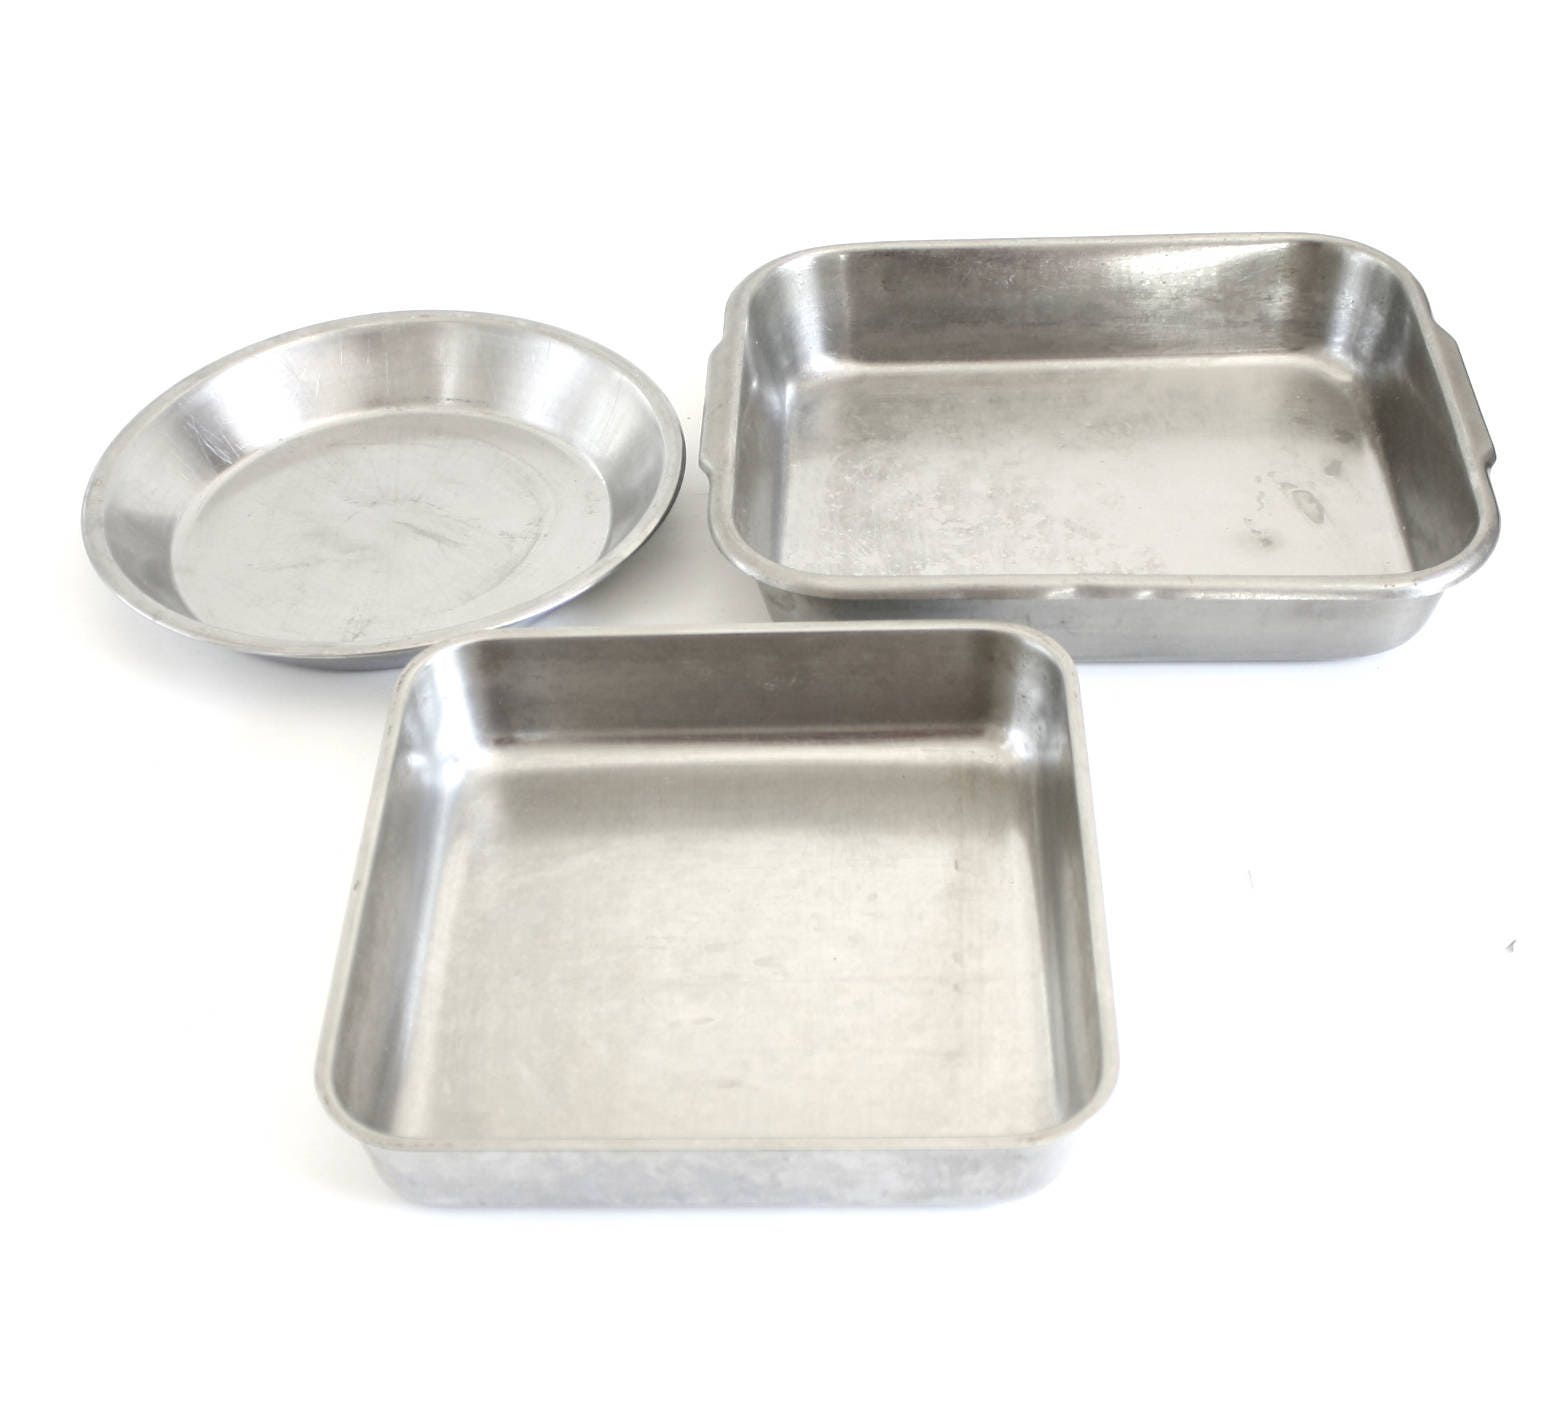 stainless steel bakeware square cake pan polar ware allegheny. Black Bedroom Furniture Sets. Home Design Ideas